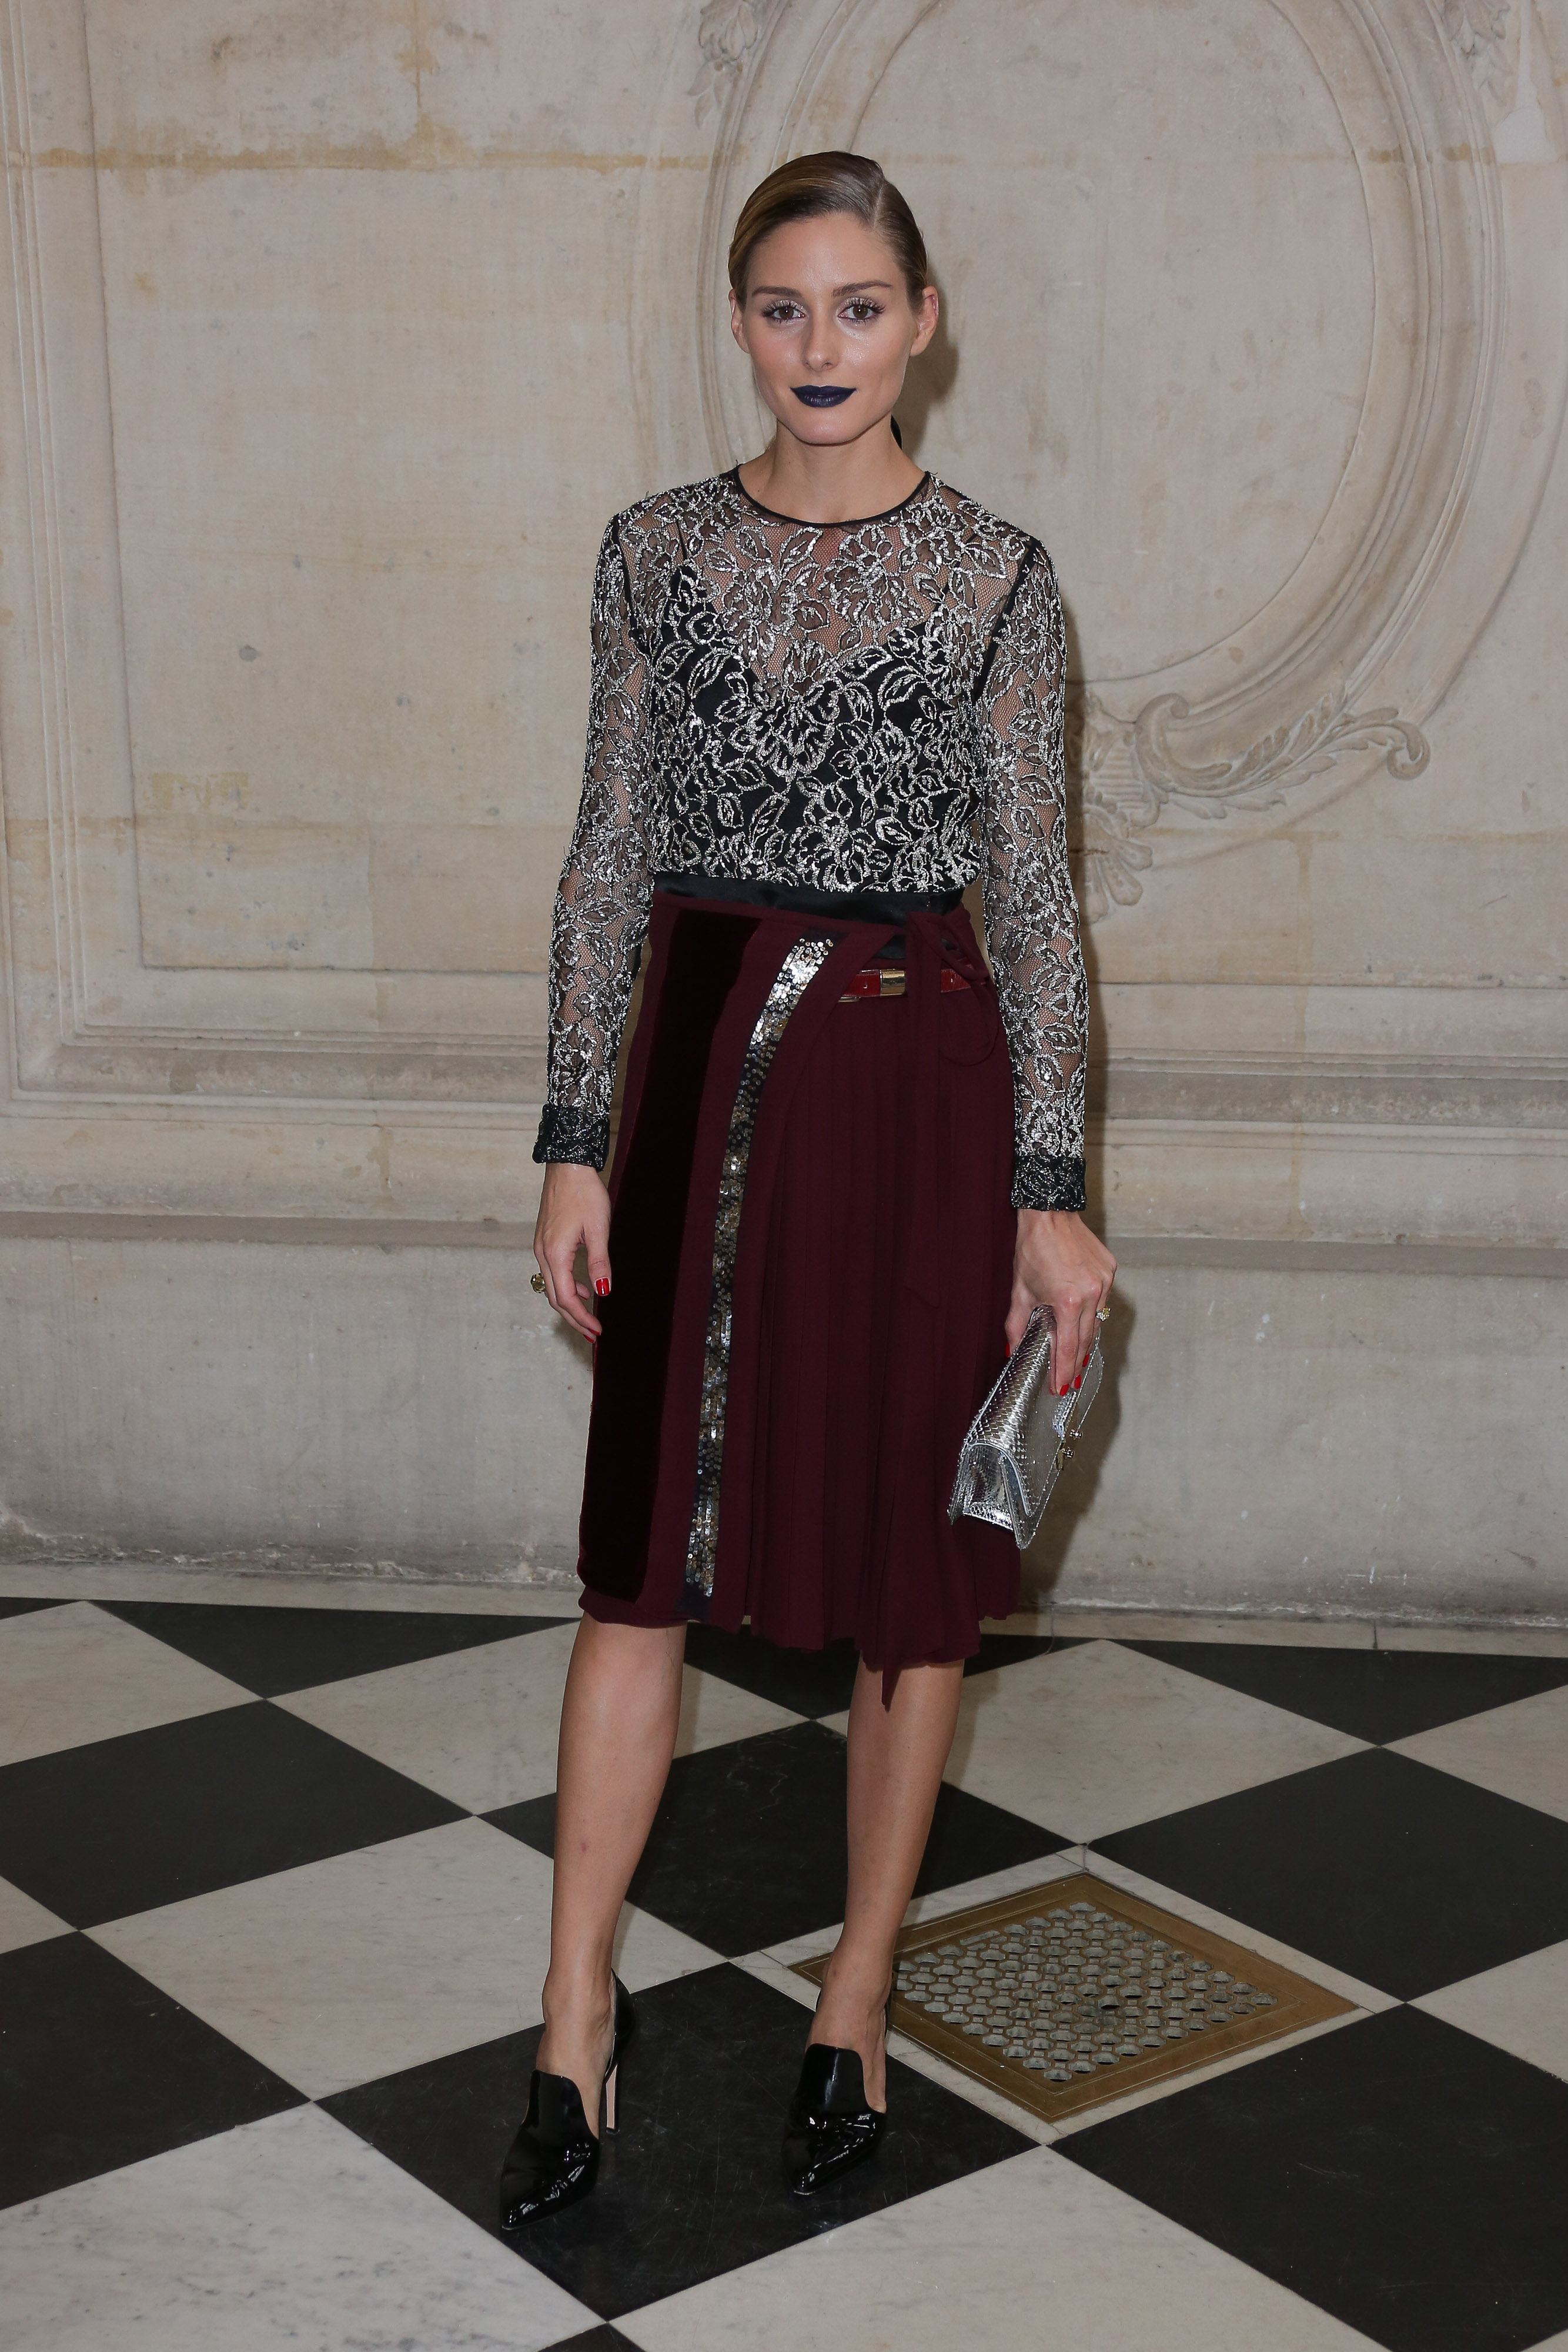 Celebrities are seen attending the Christian Dior fashion show during Paris Fashion Week in Paris, France.  <P> Pictured: Olivia Palermo <B>Ref: SPL1366222  301016  </B><BR/> Picture by: Splash News<BR/> </P><P> <B>Splash News and Pictures</B><BR/> Los Angeles:310-821-2666<BR/> New York:212-619-2666<BR/> London:870-934-2666<BR/> <span id=